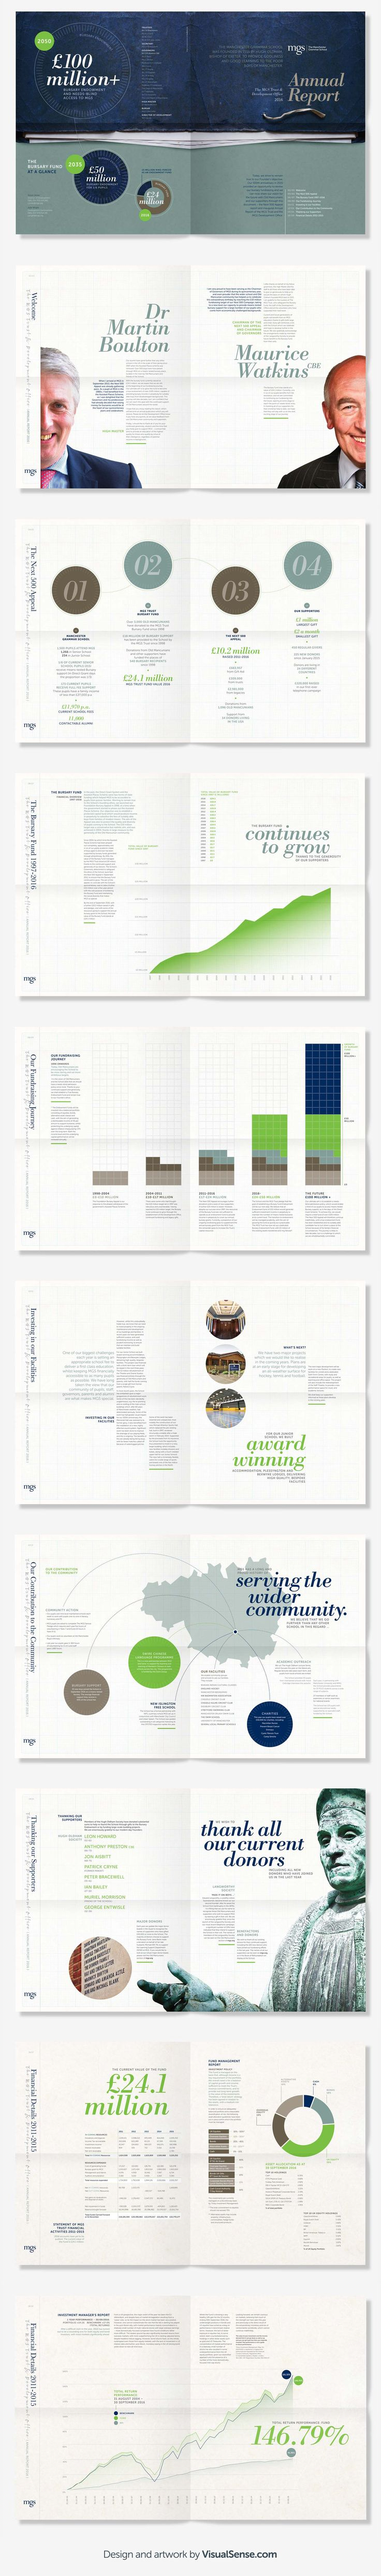 best annual report design pdf